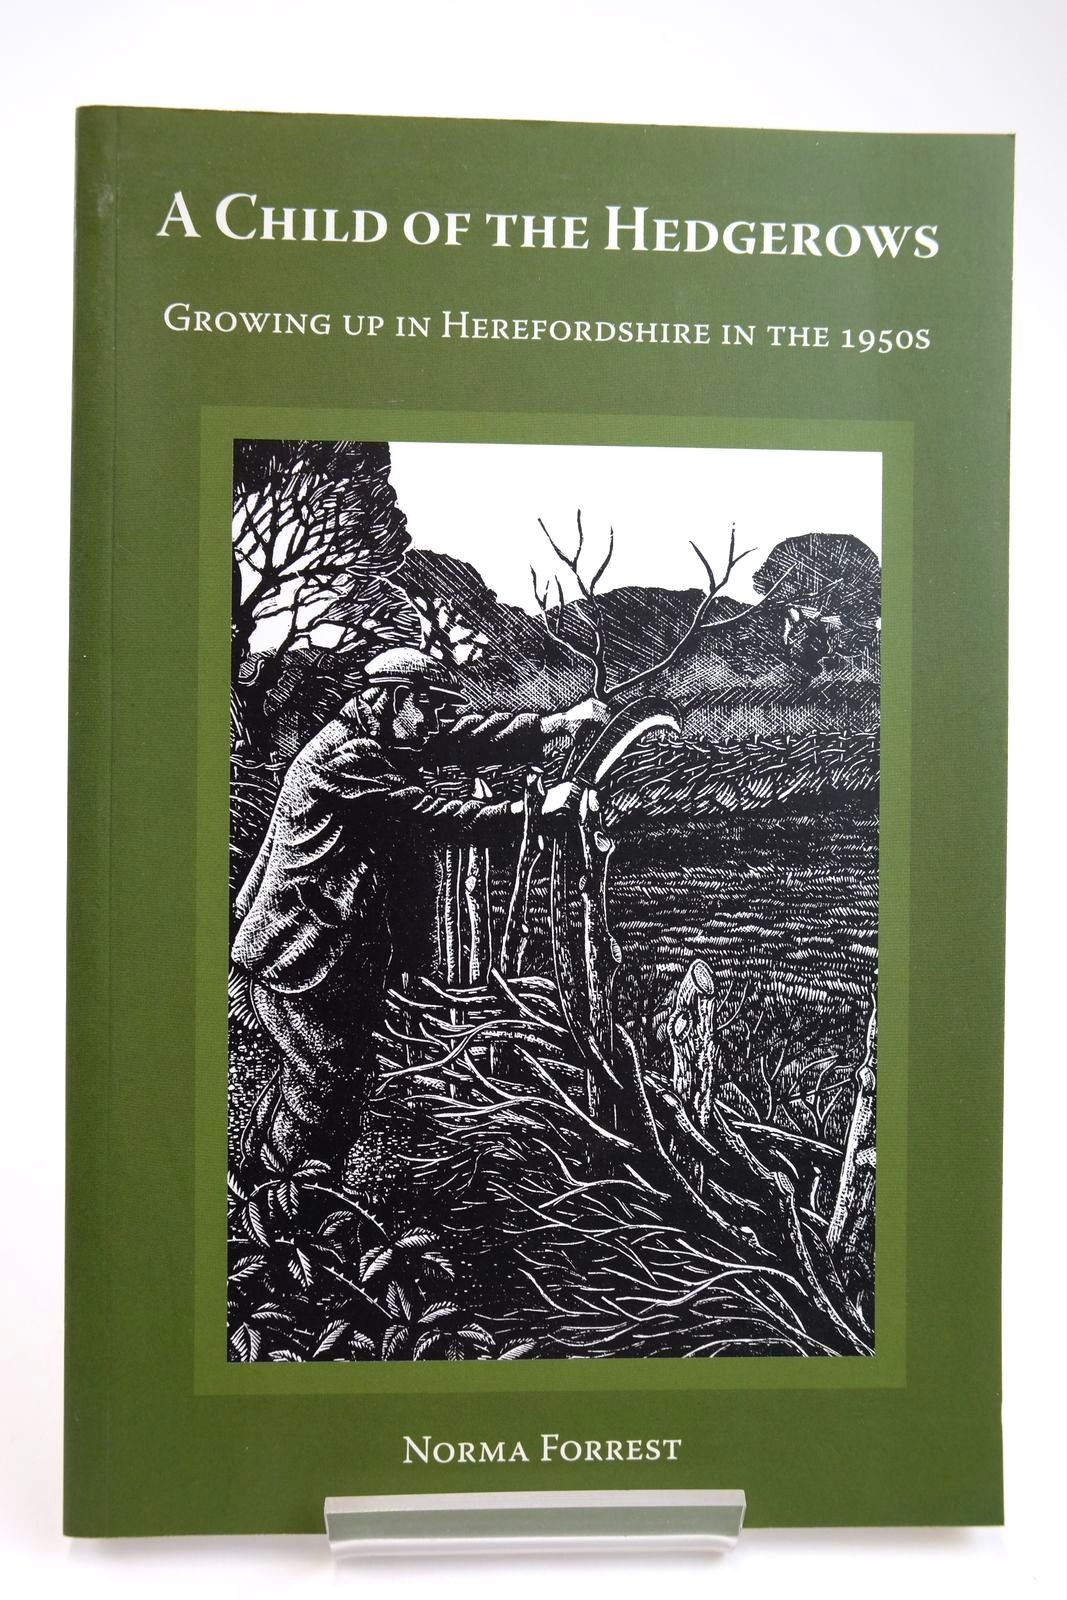 Photo of A CHILD OF THE HEDGEROWS: GROWING UP IN HEREFORDSHIRE IN THE 1950S written by Forrest, Norma published by Logaston Press (STOCK CODE: 2133540)  for sale by Stella & Rose's Books